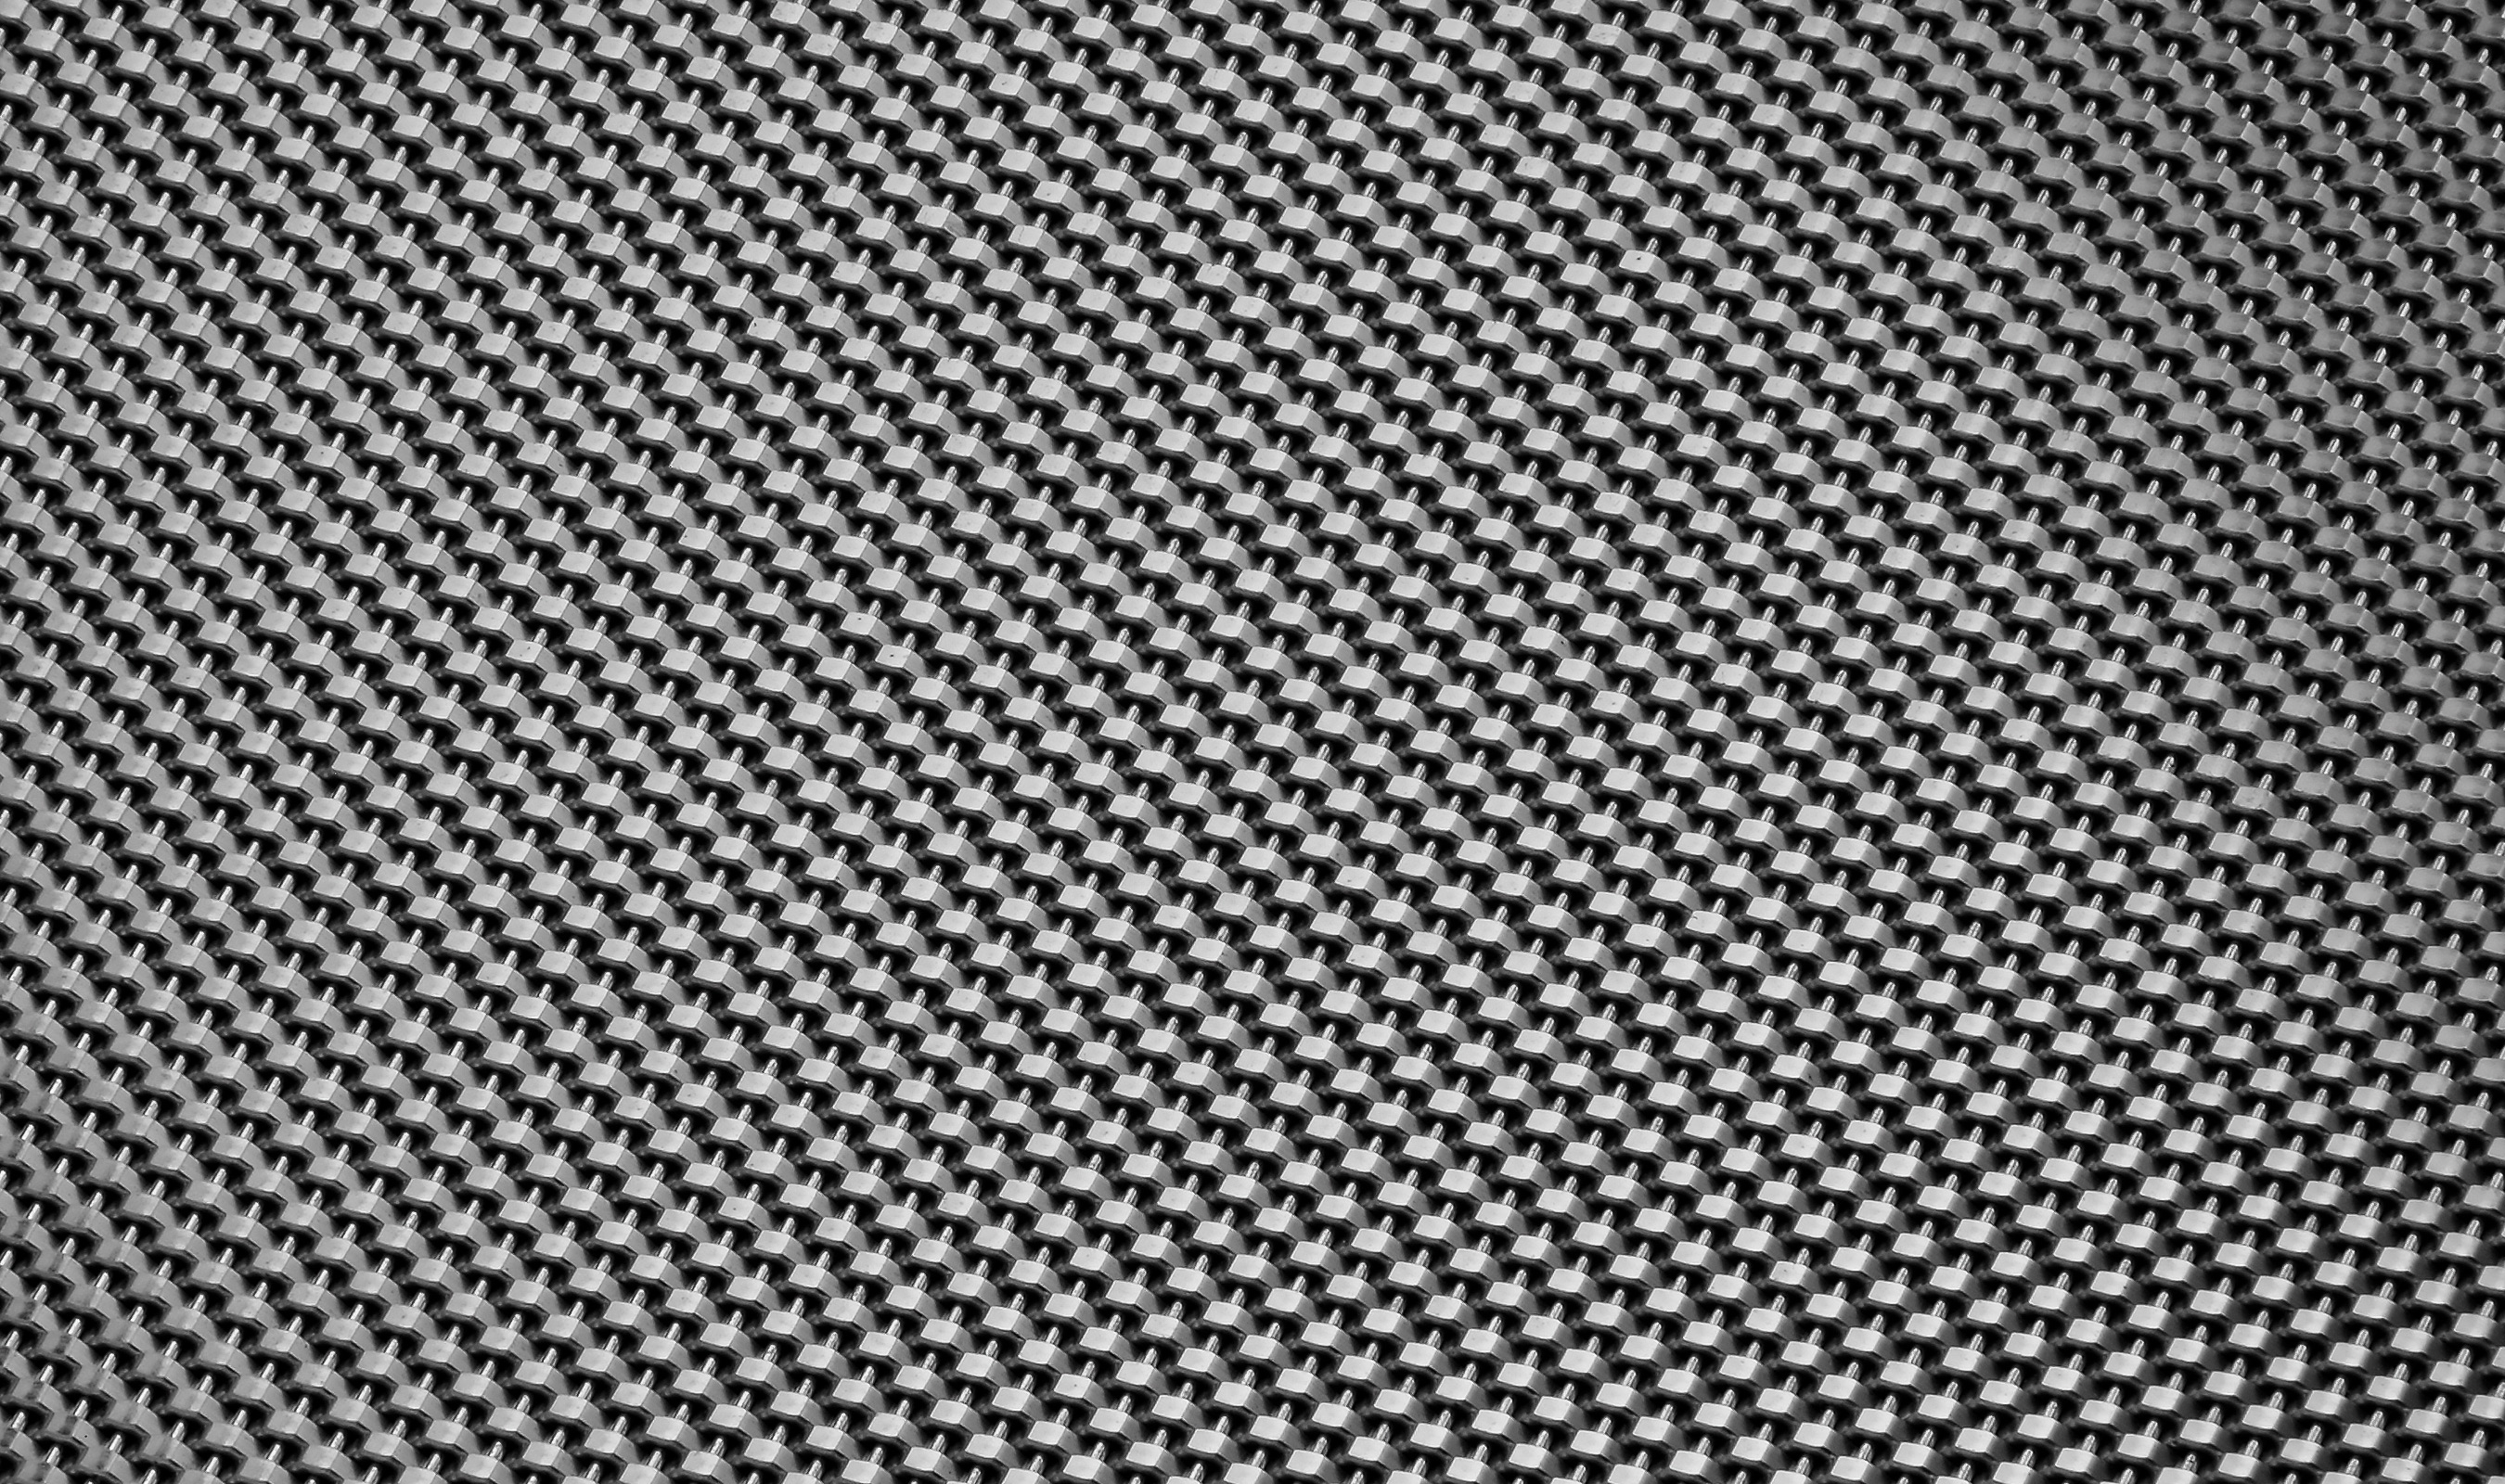 Banker Wire DS-18 stainless steel architectural wire mesh